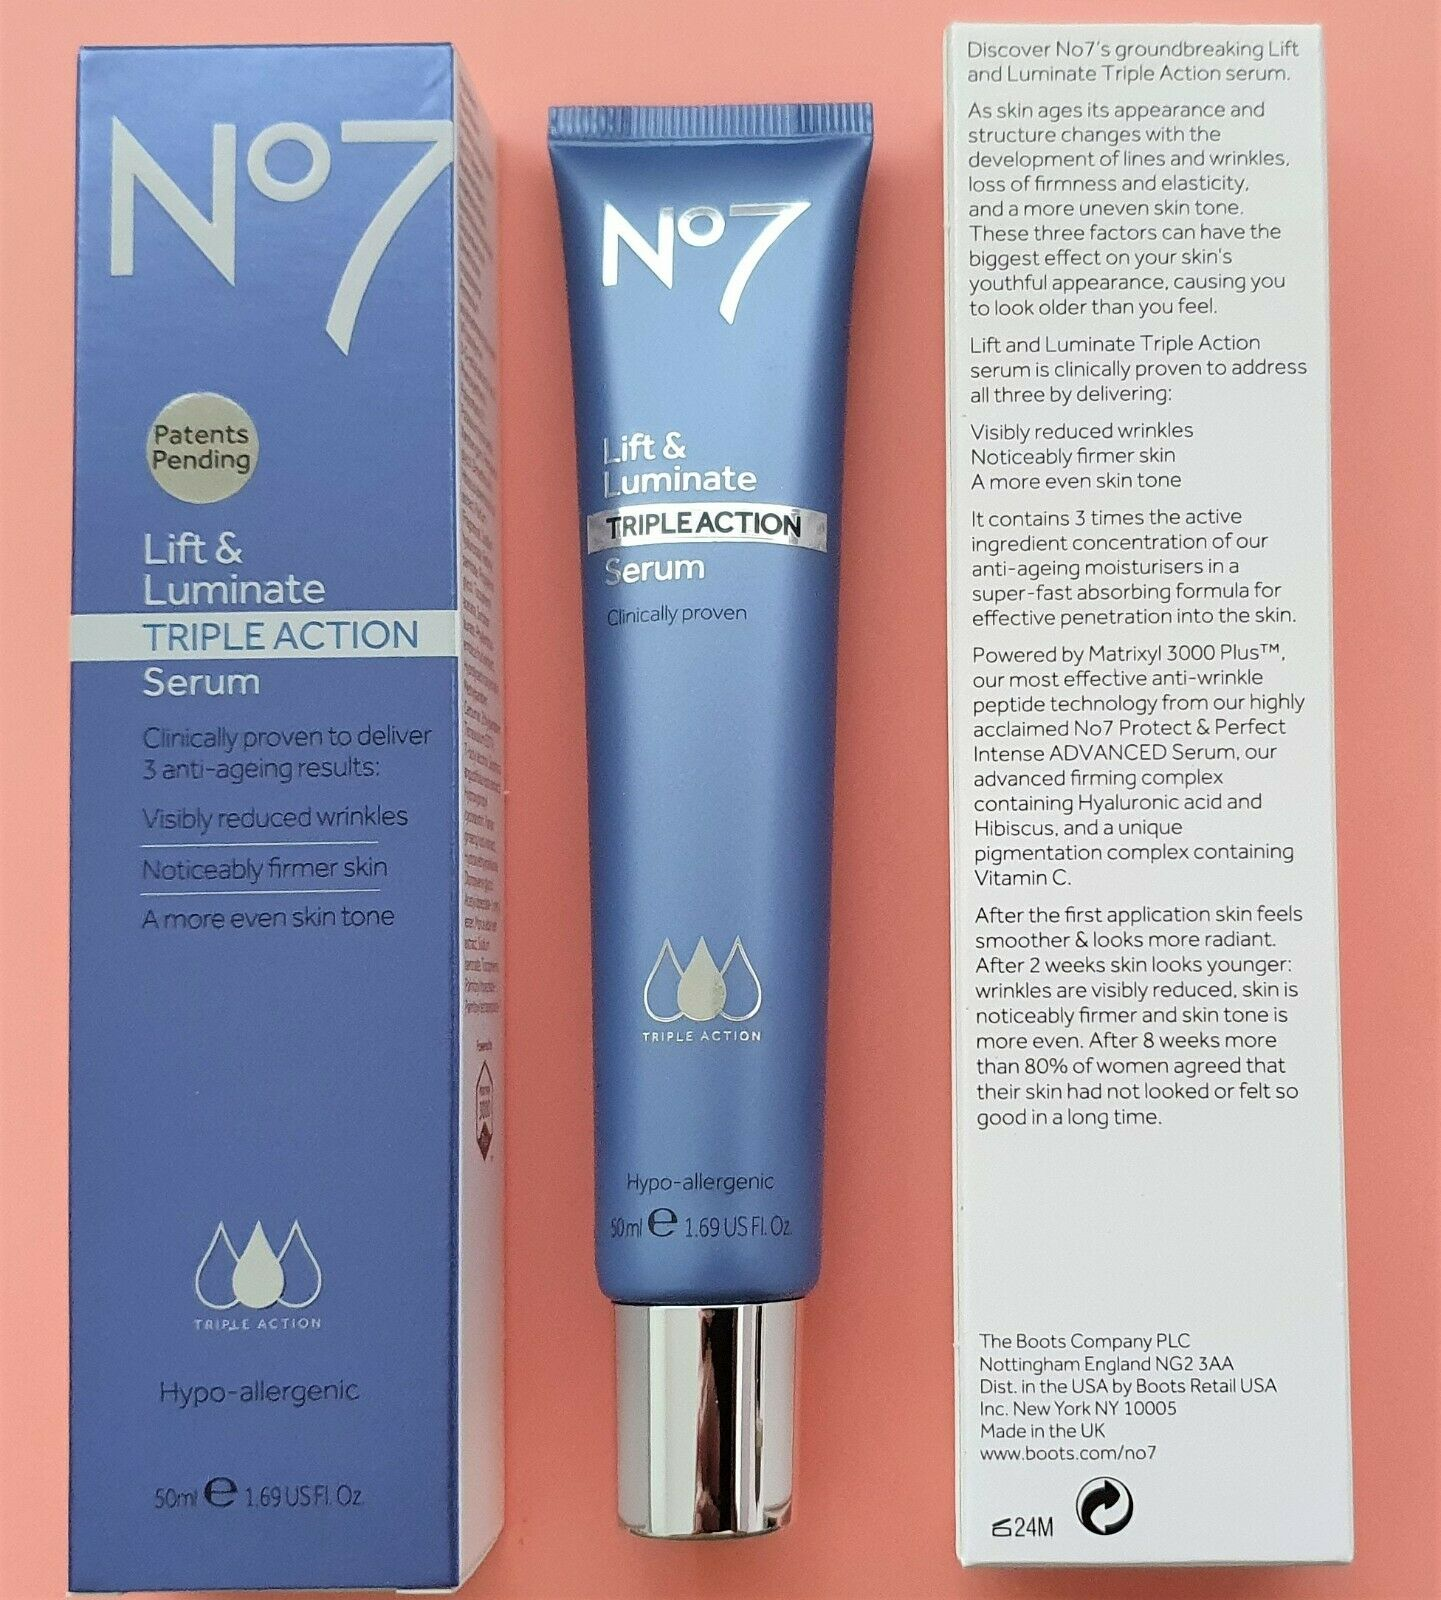 Boots No7 Lift Luminate Triple Action Serum 50ml For Sale Online Ebay